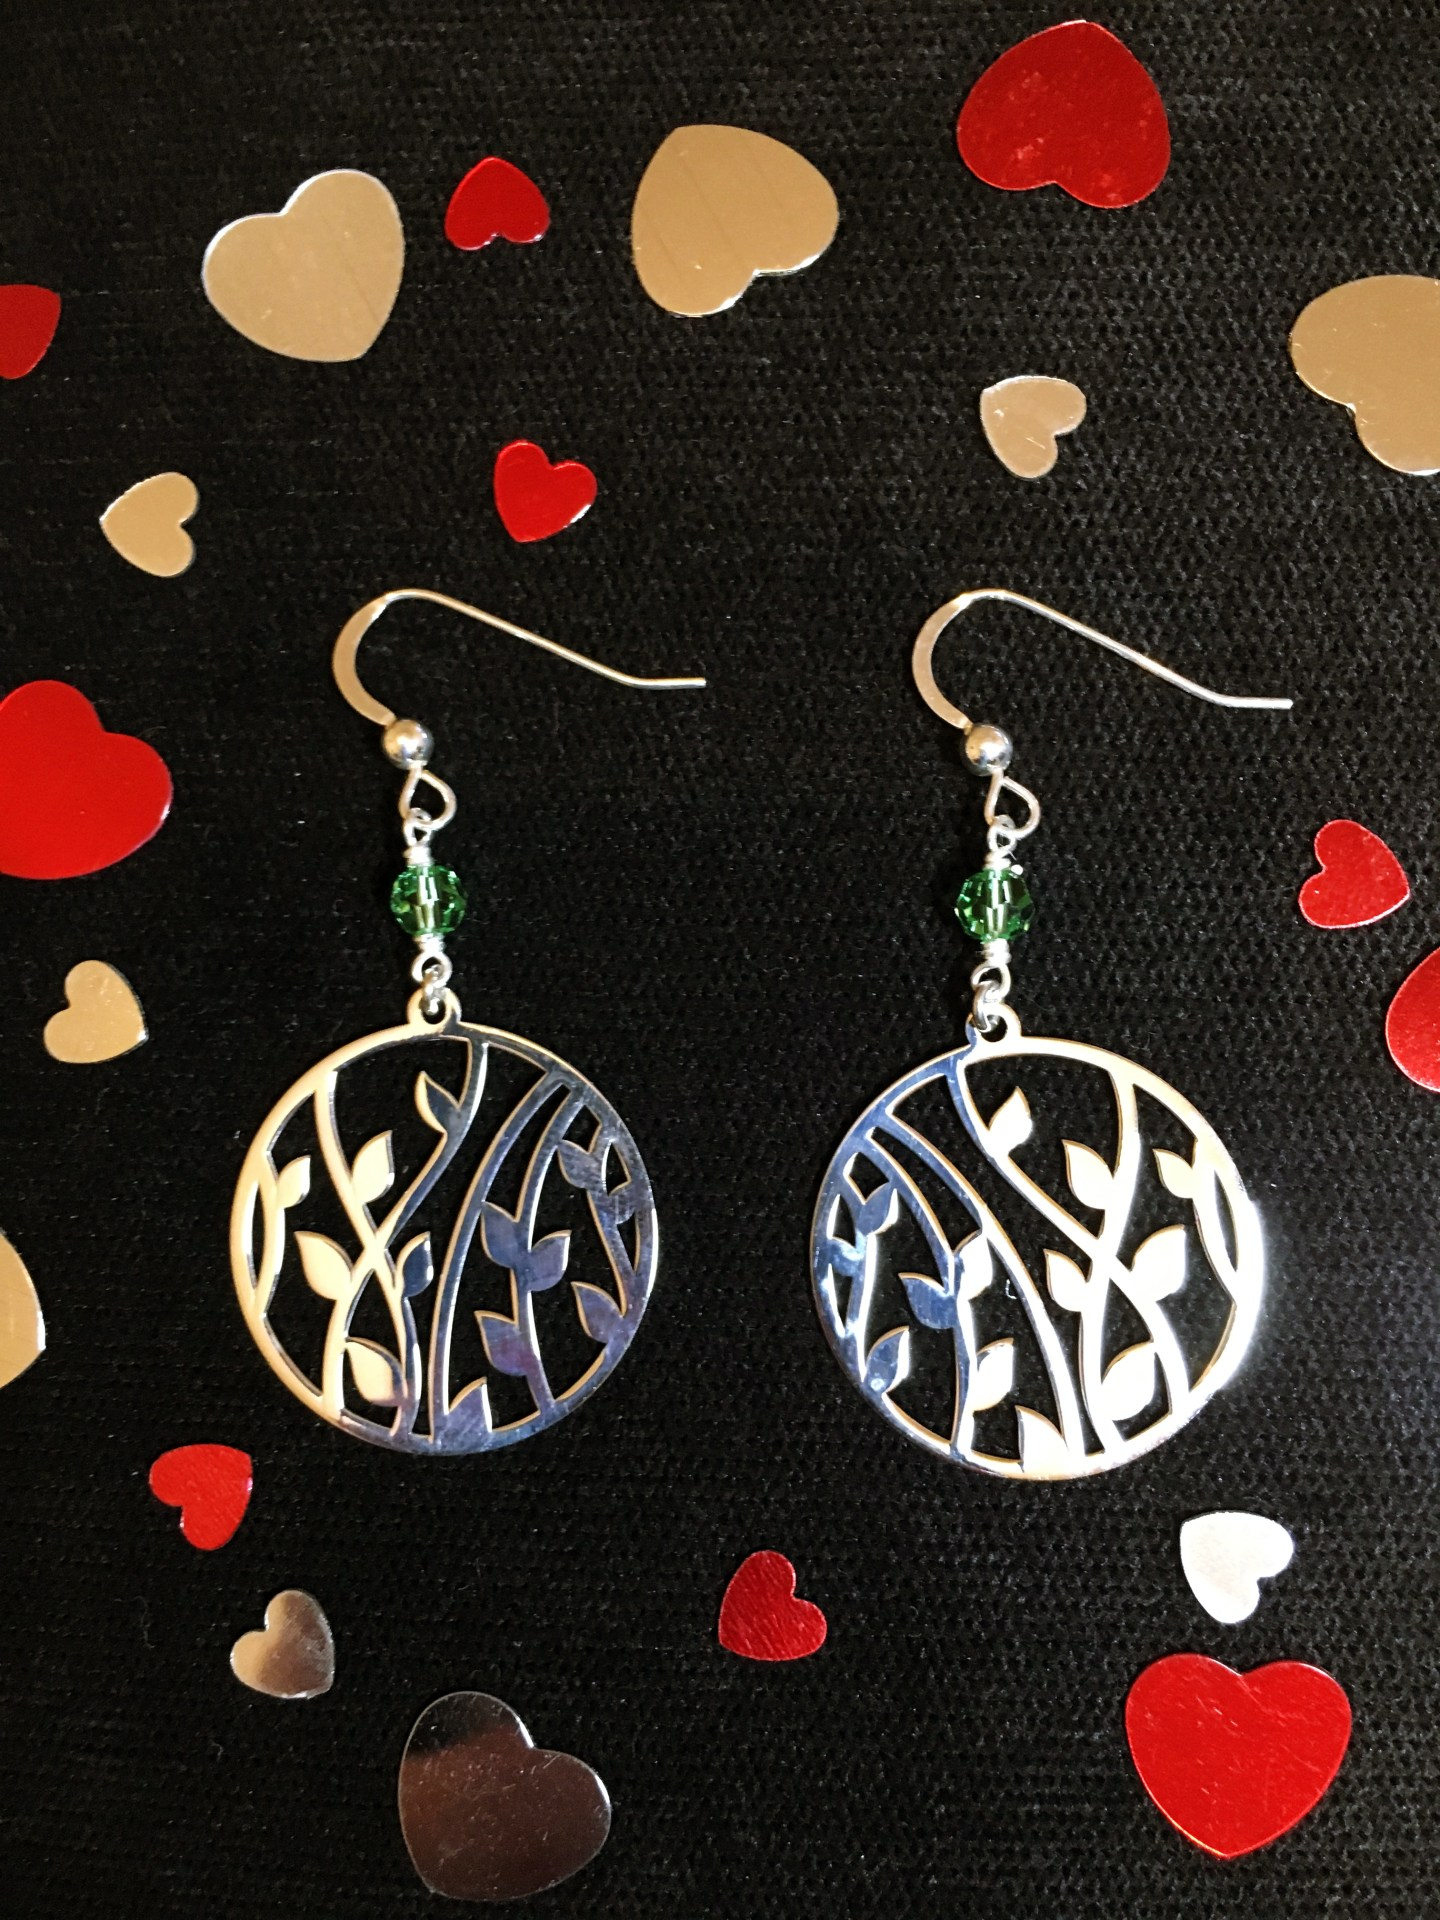 The 'bamboo' earrings, sat on a black surface with red and silver hearts around for decoration.